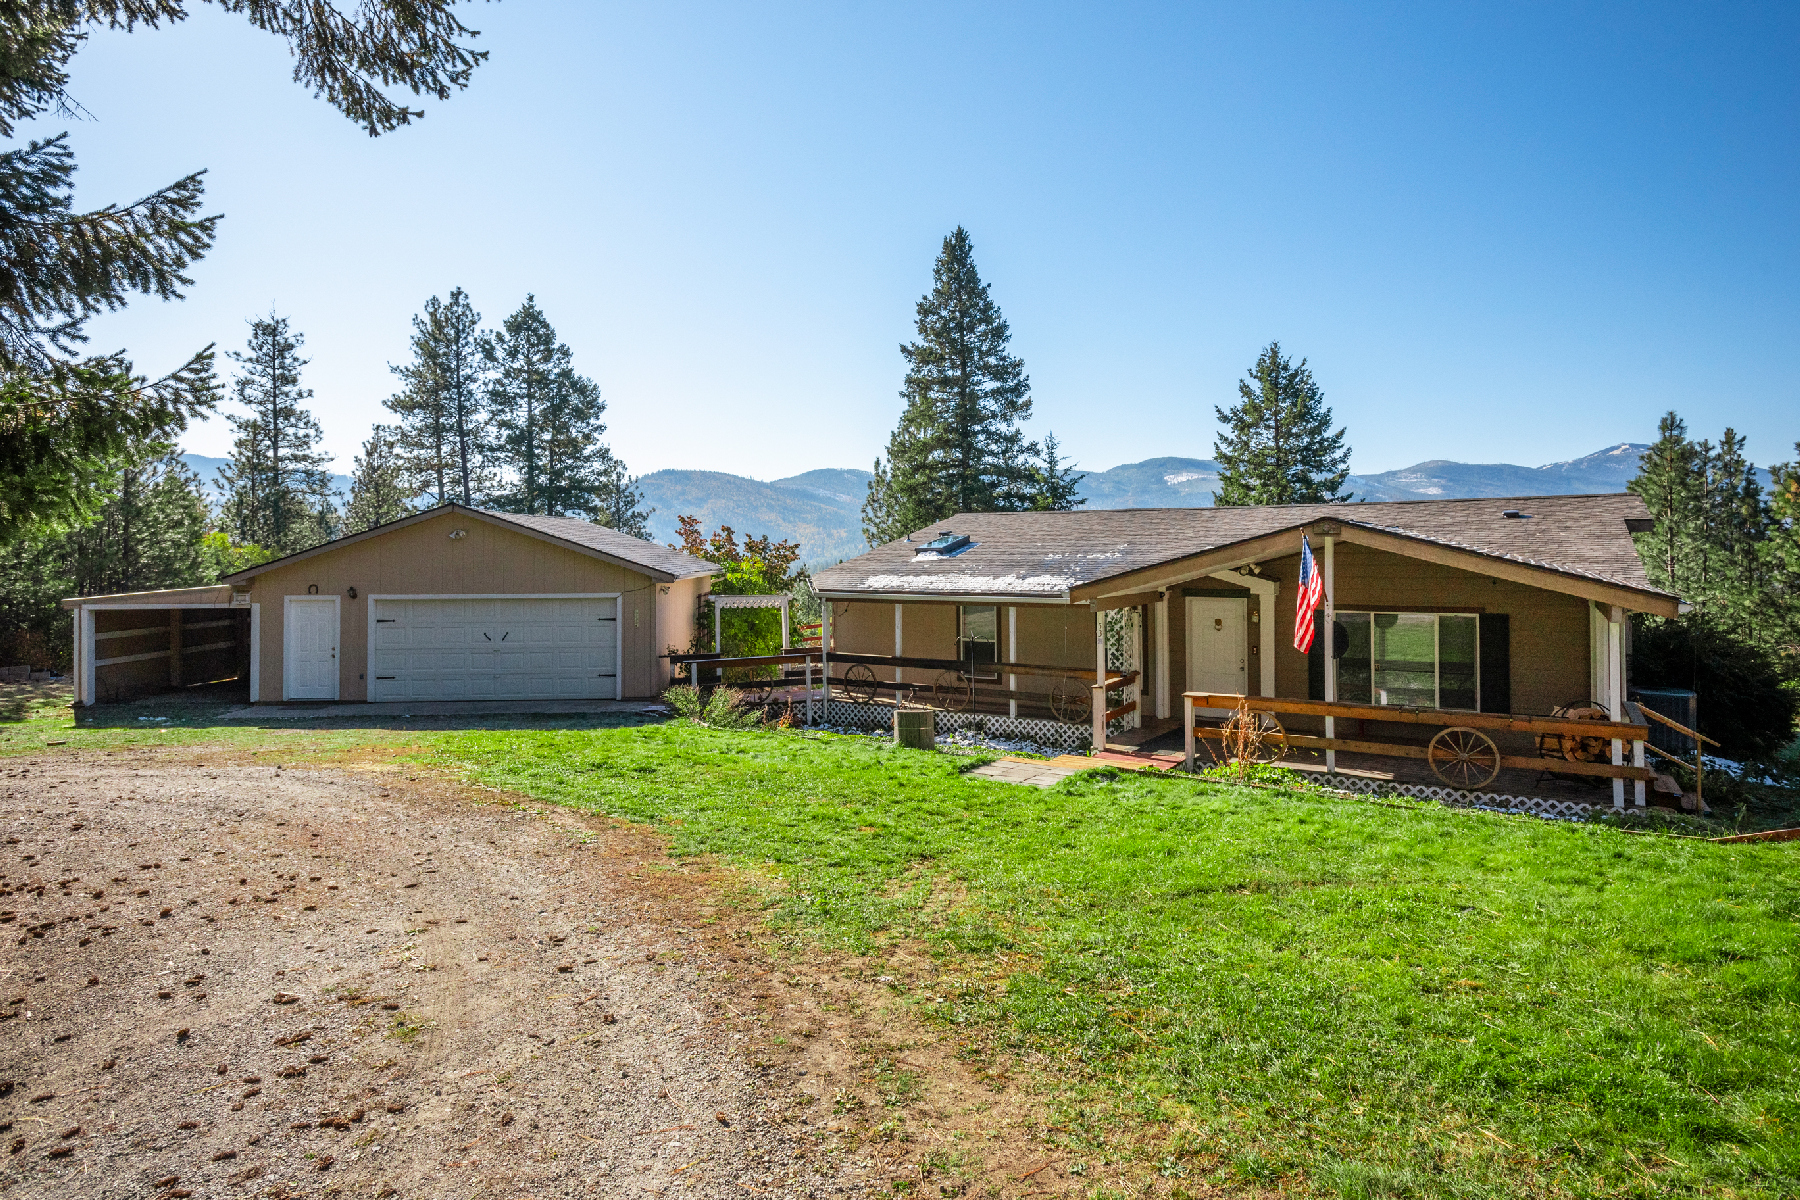 Single Family Homes for Sale at Lovely Home on Acre with Gorgeous Views 53 Short Blanchard, Idaho 83804 United States